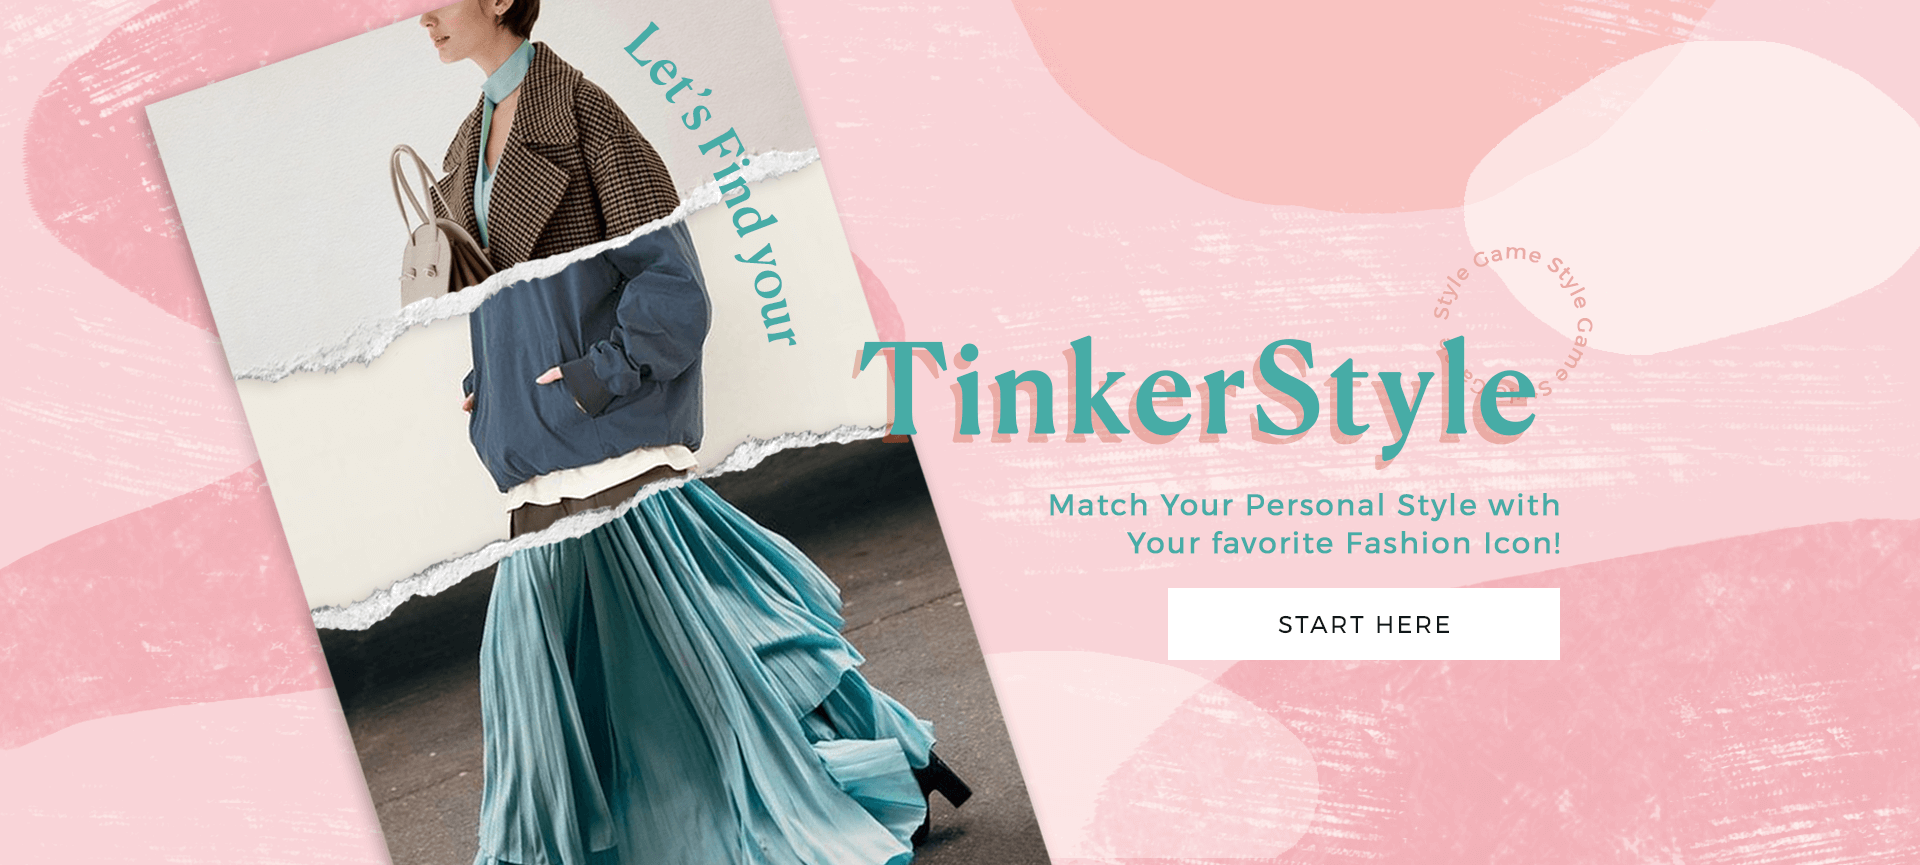 TinkerStyle